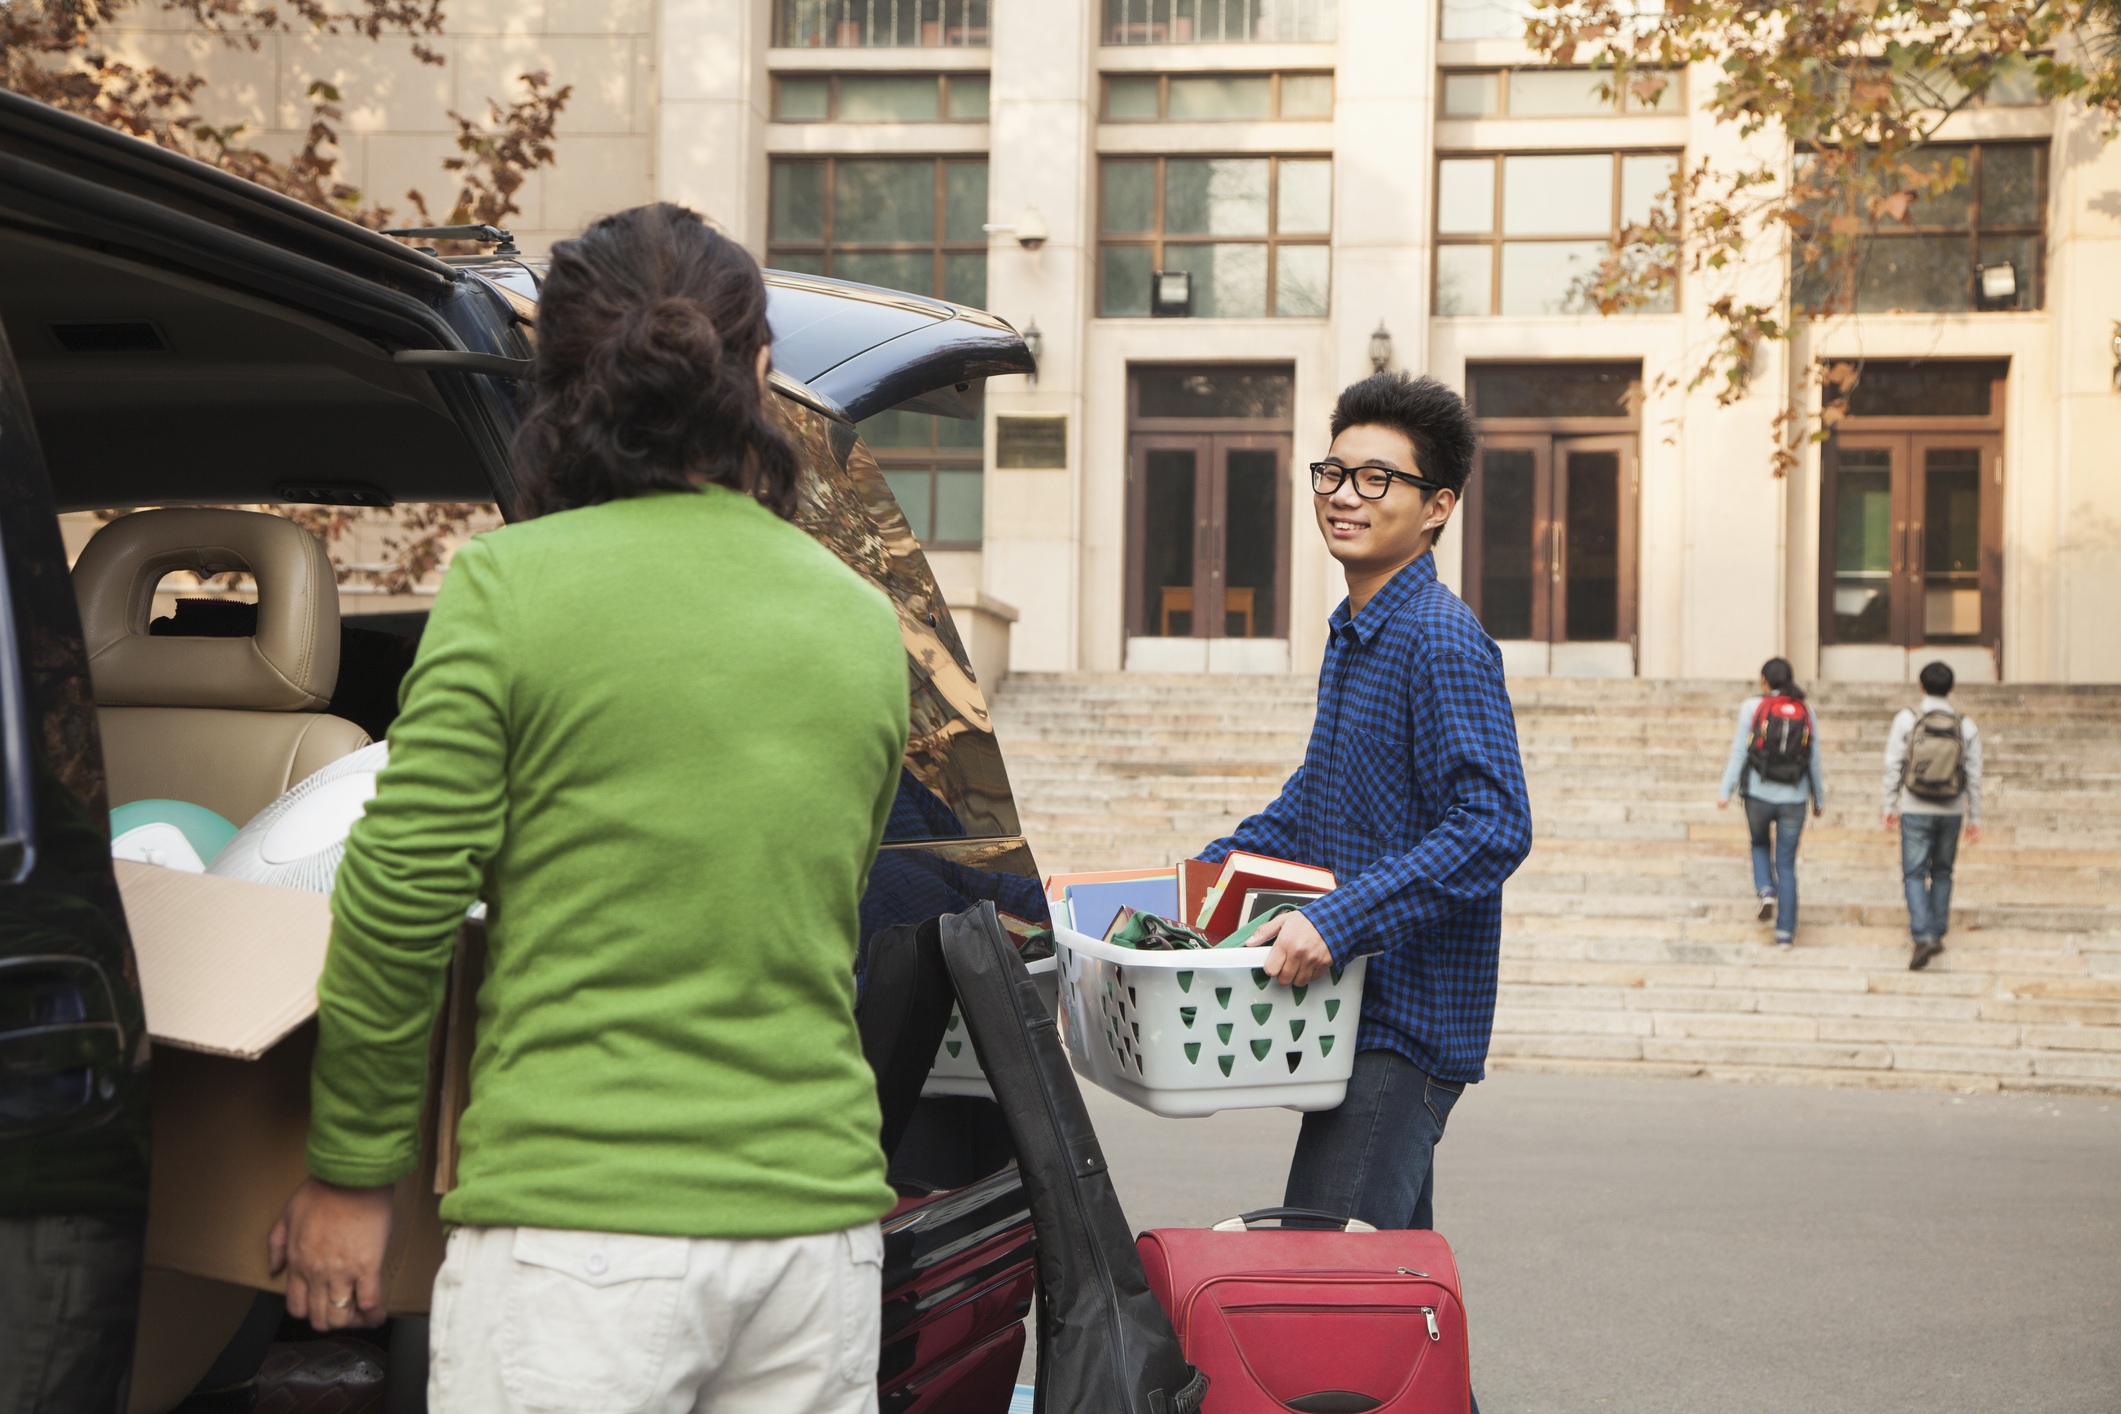 college student and his mother moving his belongings into a dormitory.